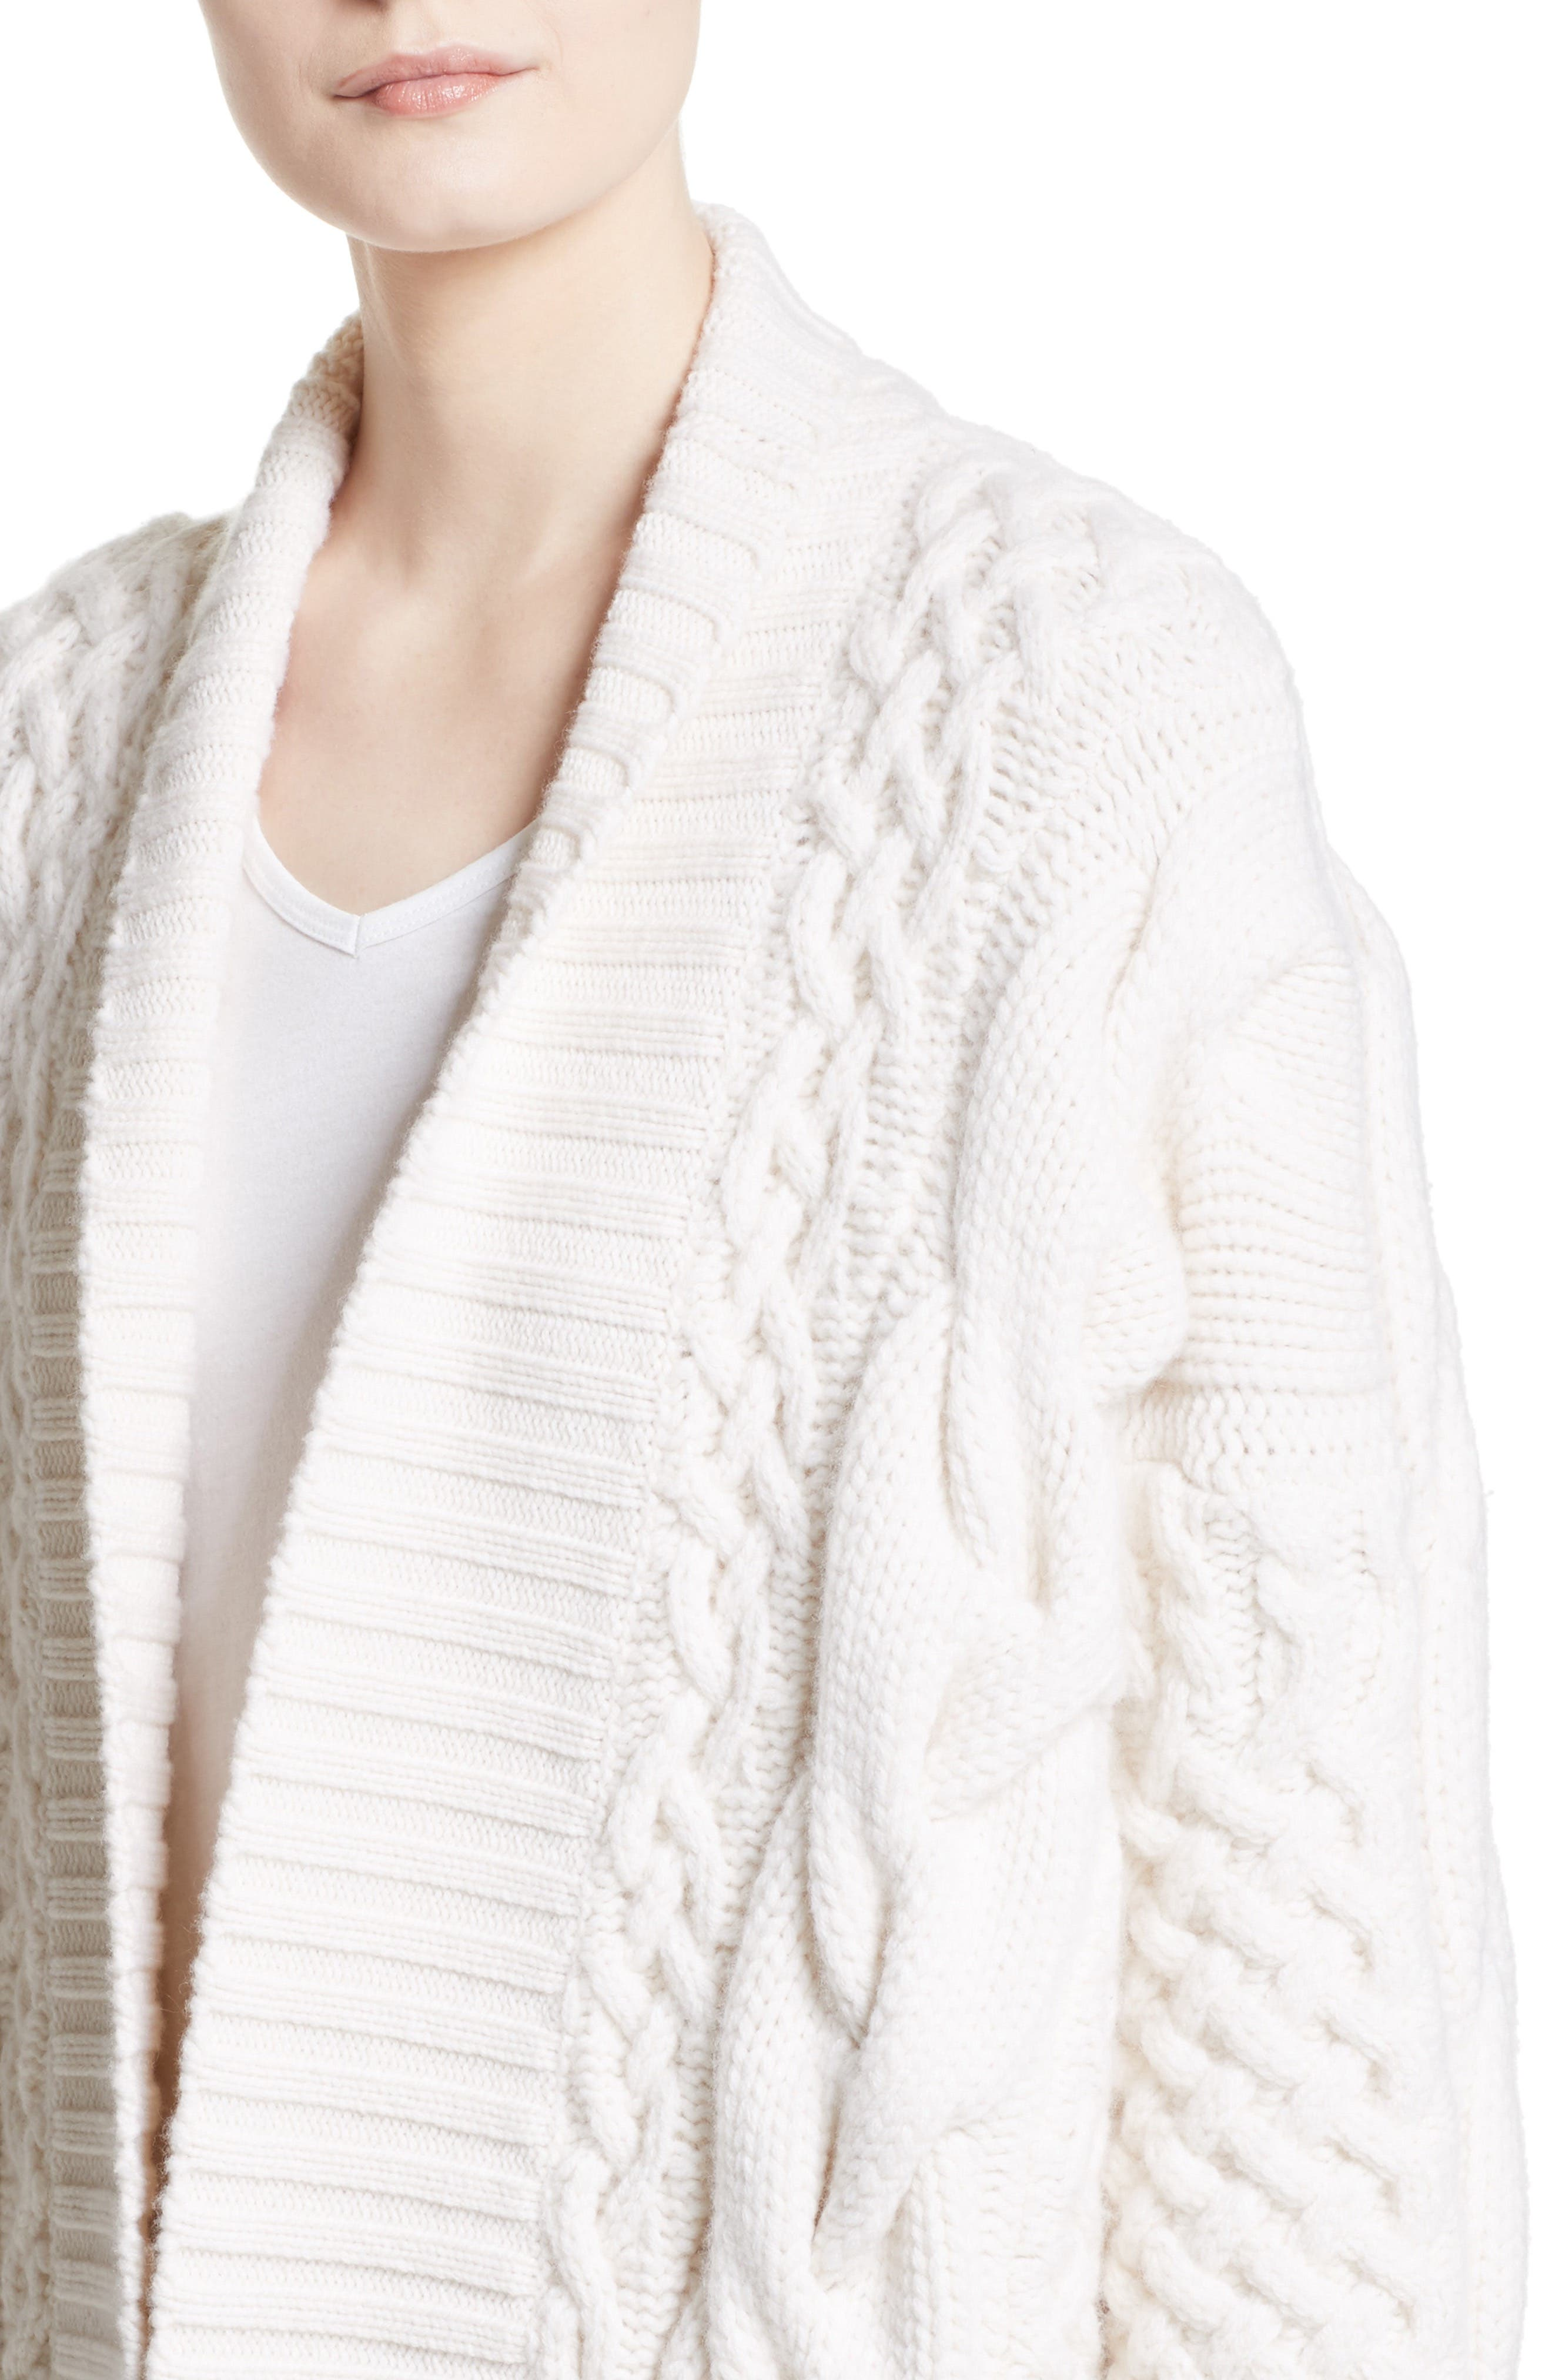 Camrosbrook Wool & Cashmere Open Cardigan,                             Alternate thumbnail 4, color,                             900